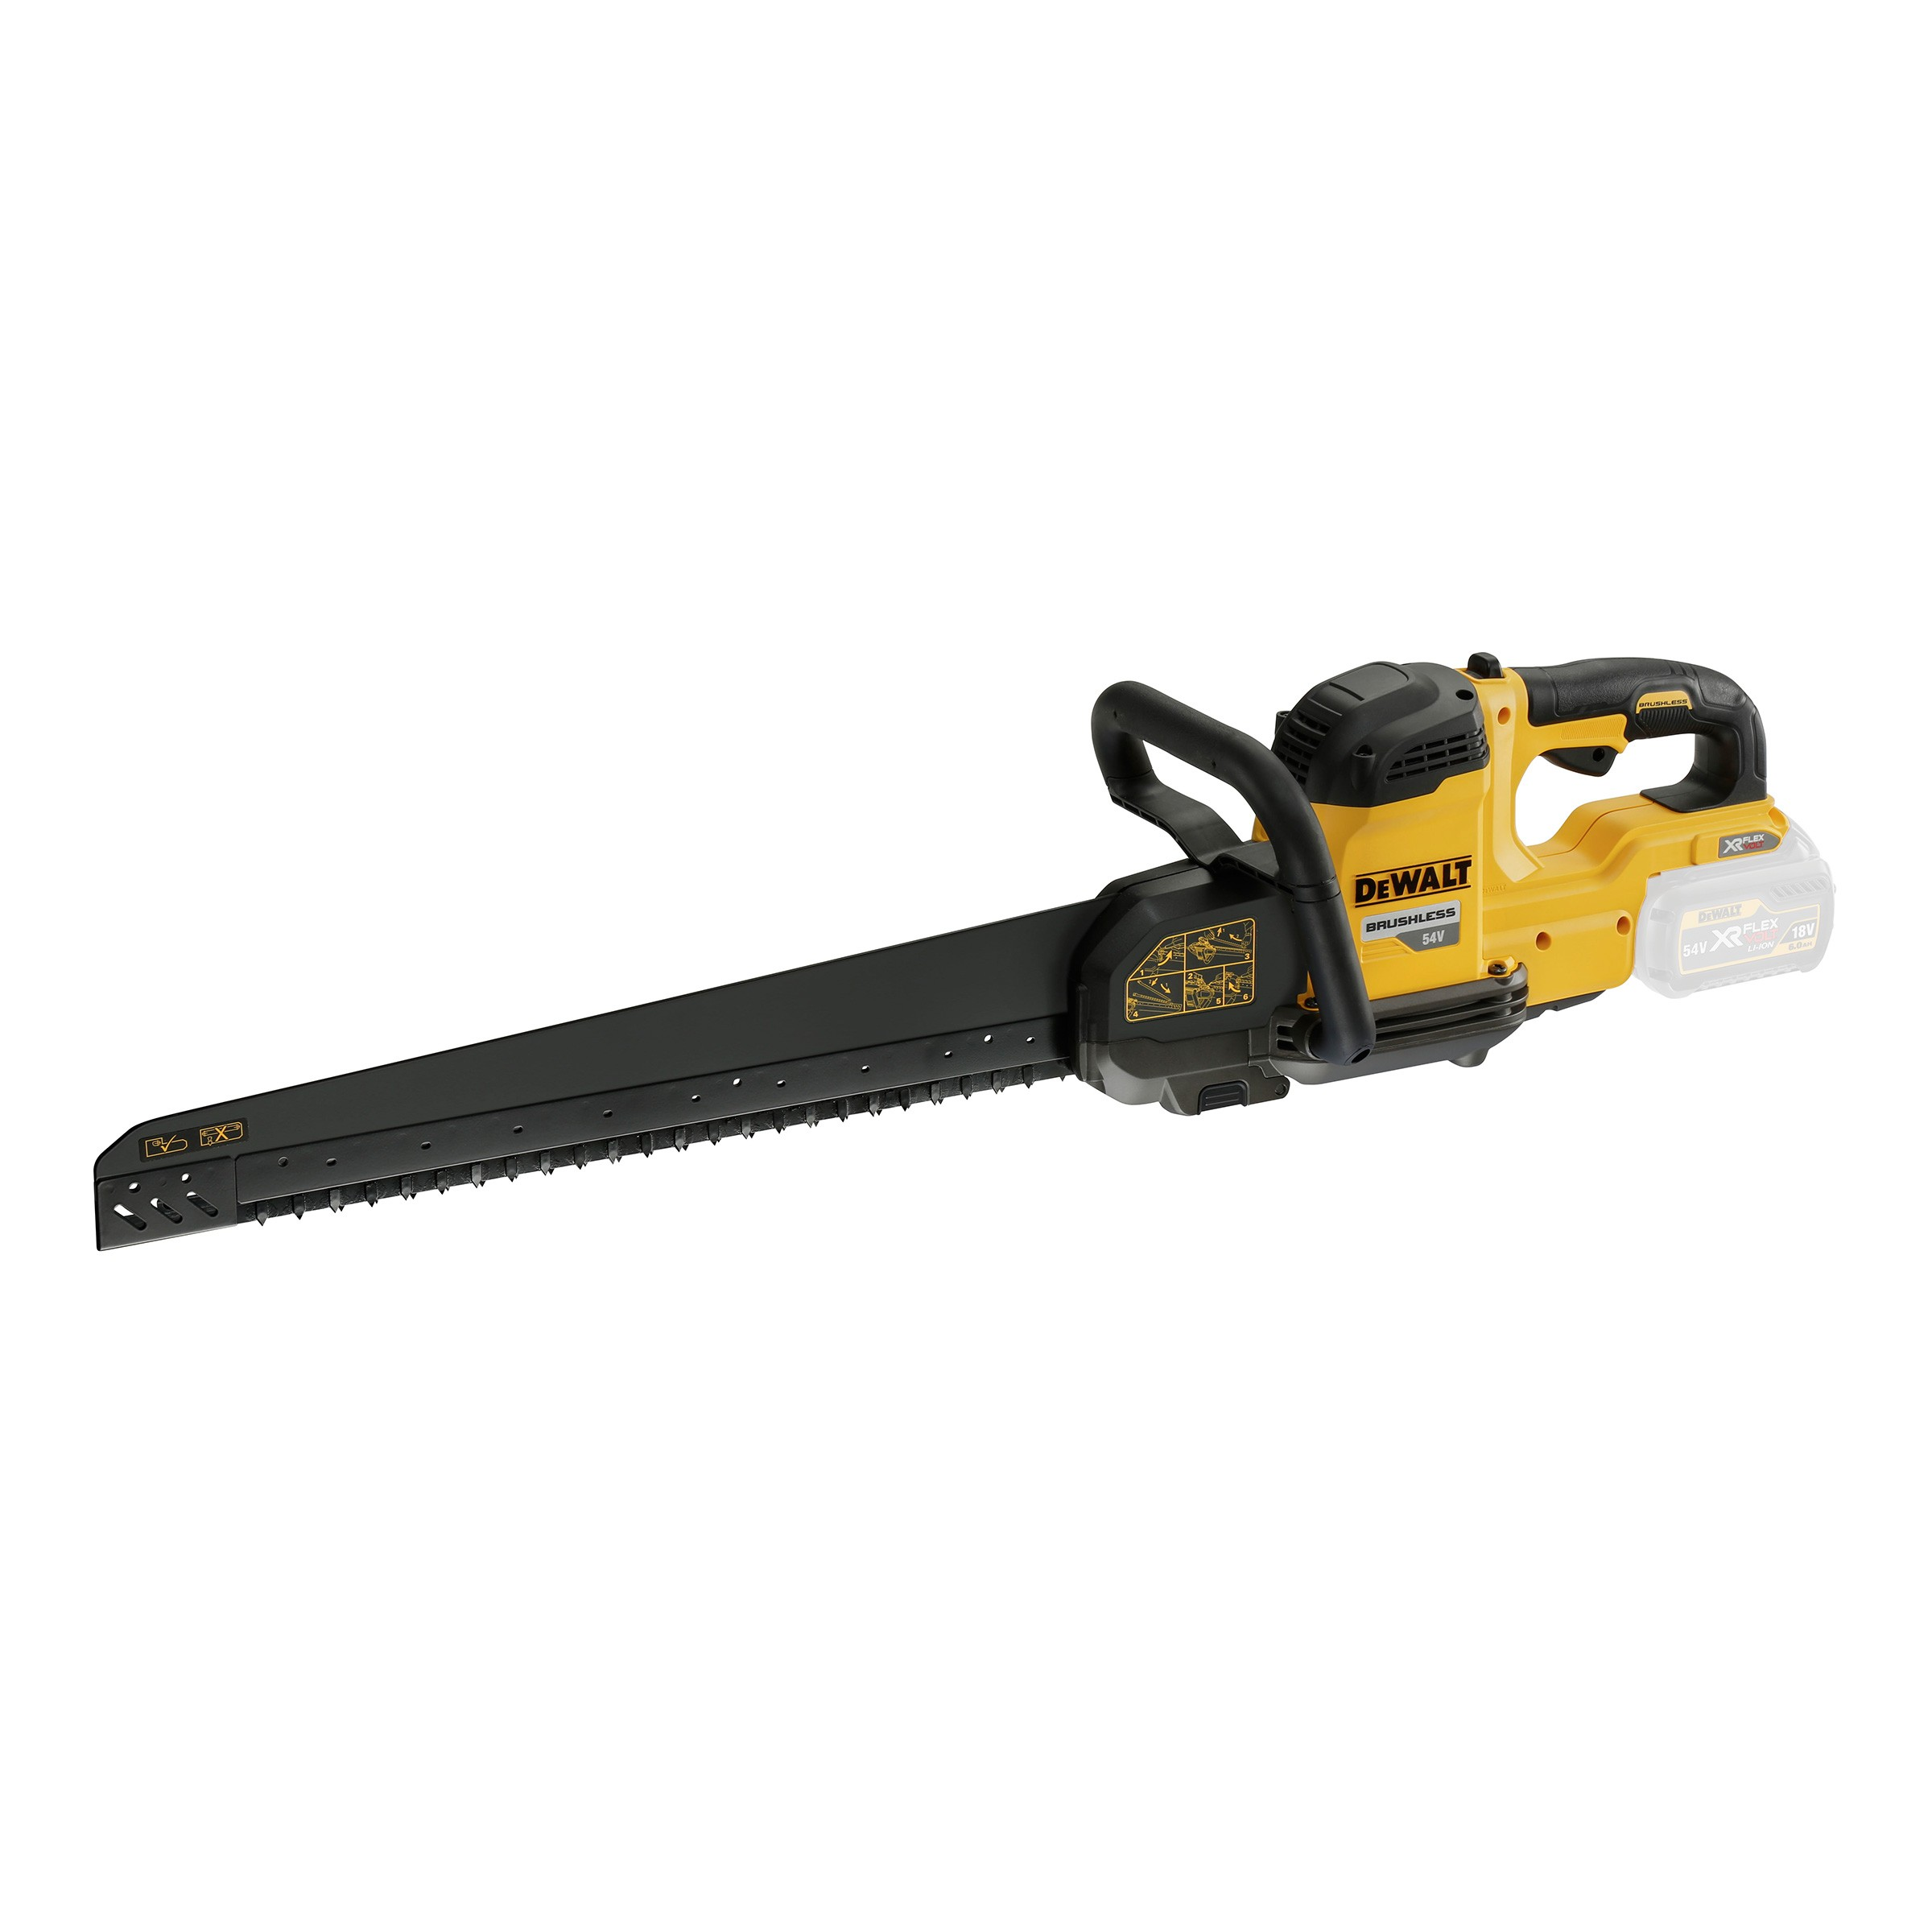 DeWalt DCS397N 54v XR FLEXVOLT 425mm Long Bar Cordless Brushless Alligator Saw Body Only